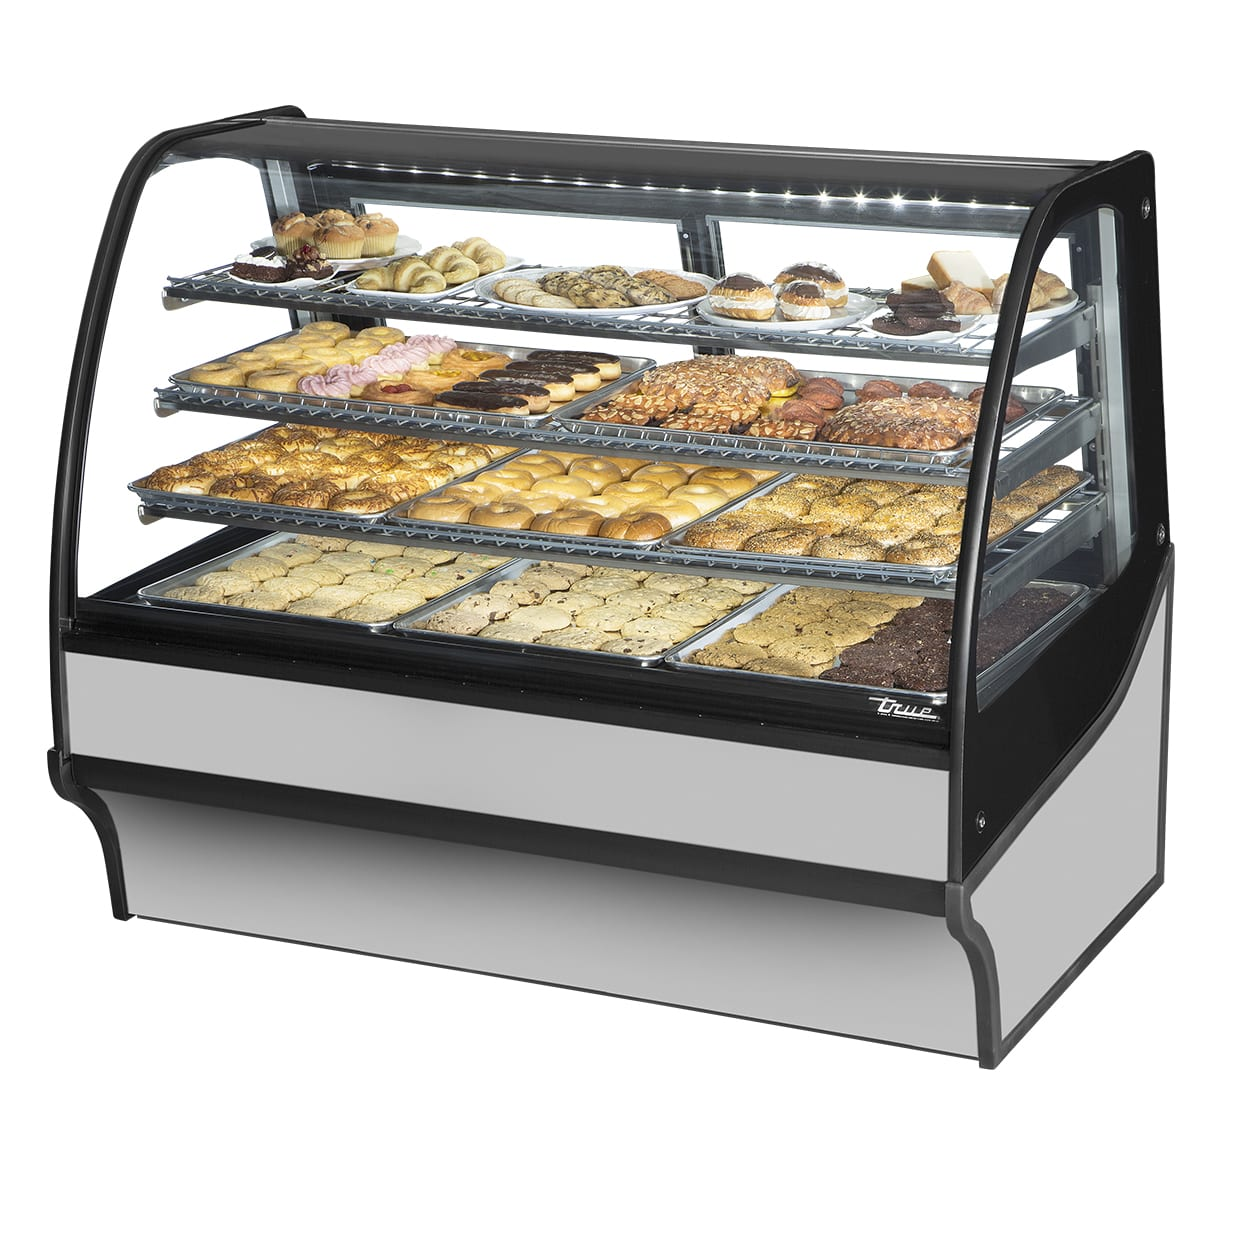 """True TDM-DC-59-GE/GE-S-S 59.25"""" Full-Service Dry Bakery Case w/ Curved Glass - (4) Levels, 115v"""